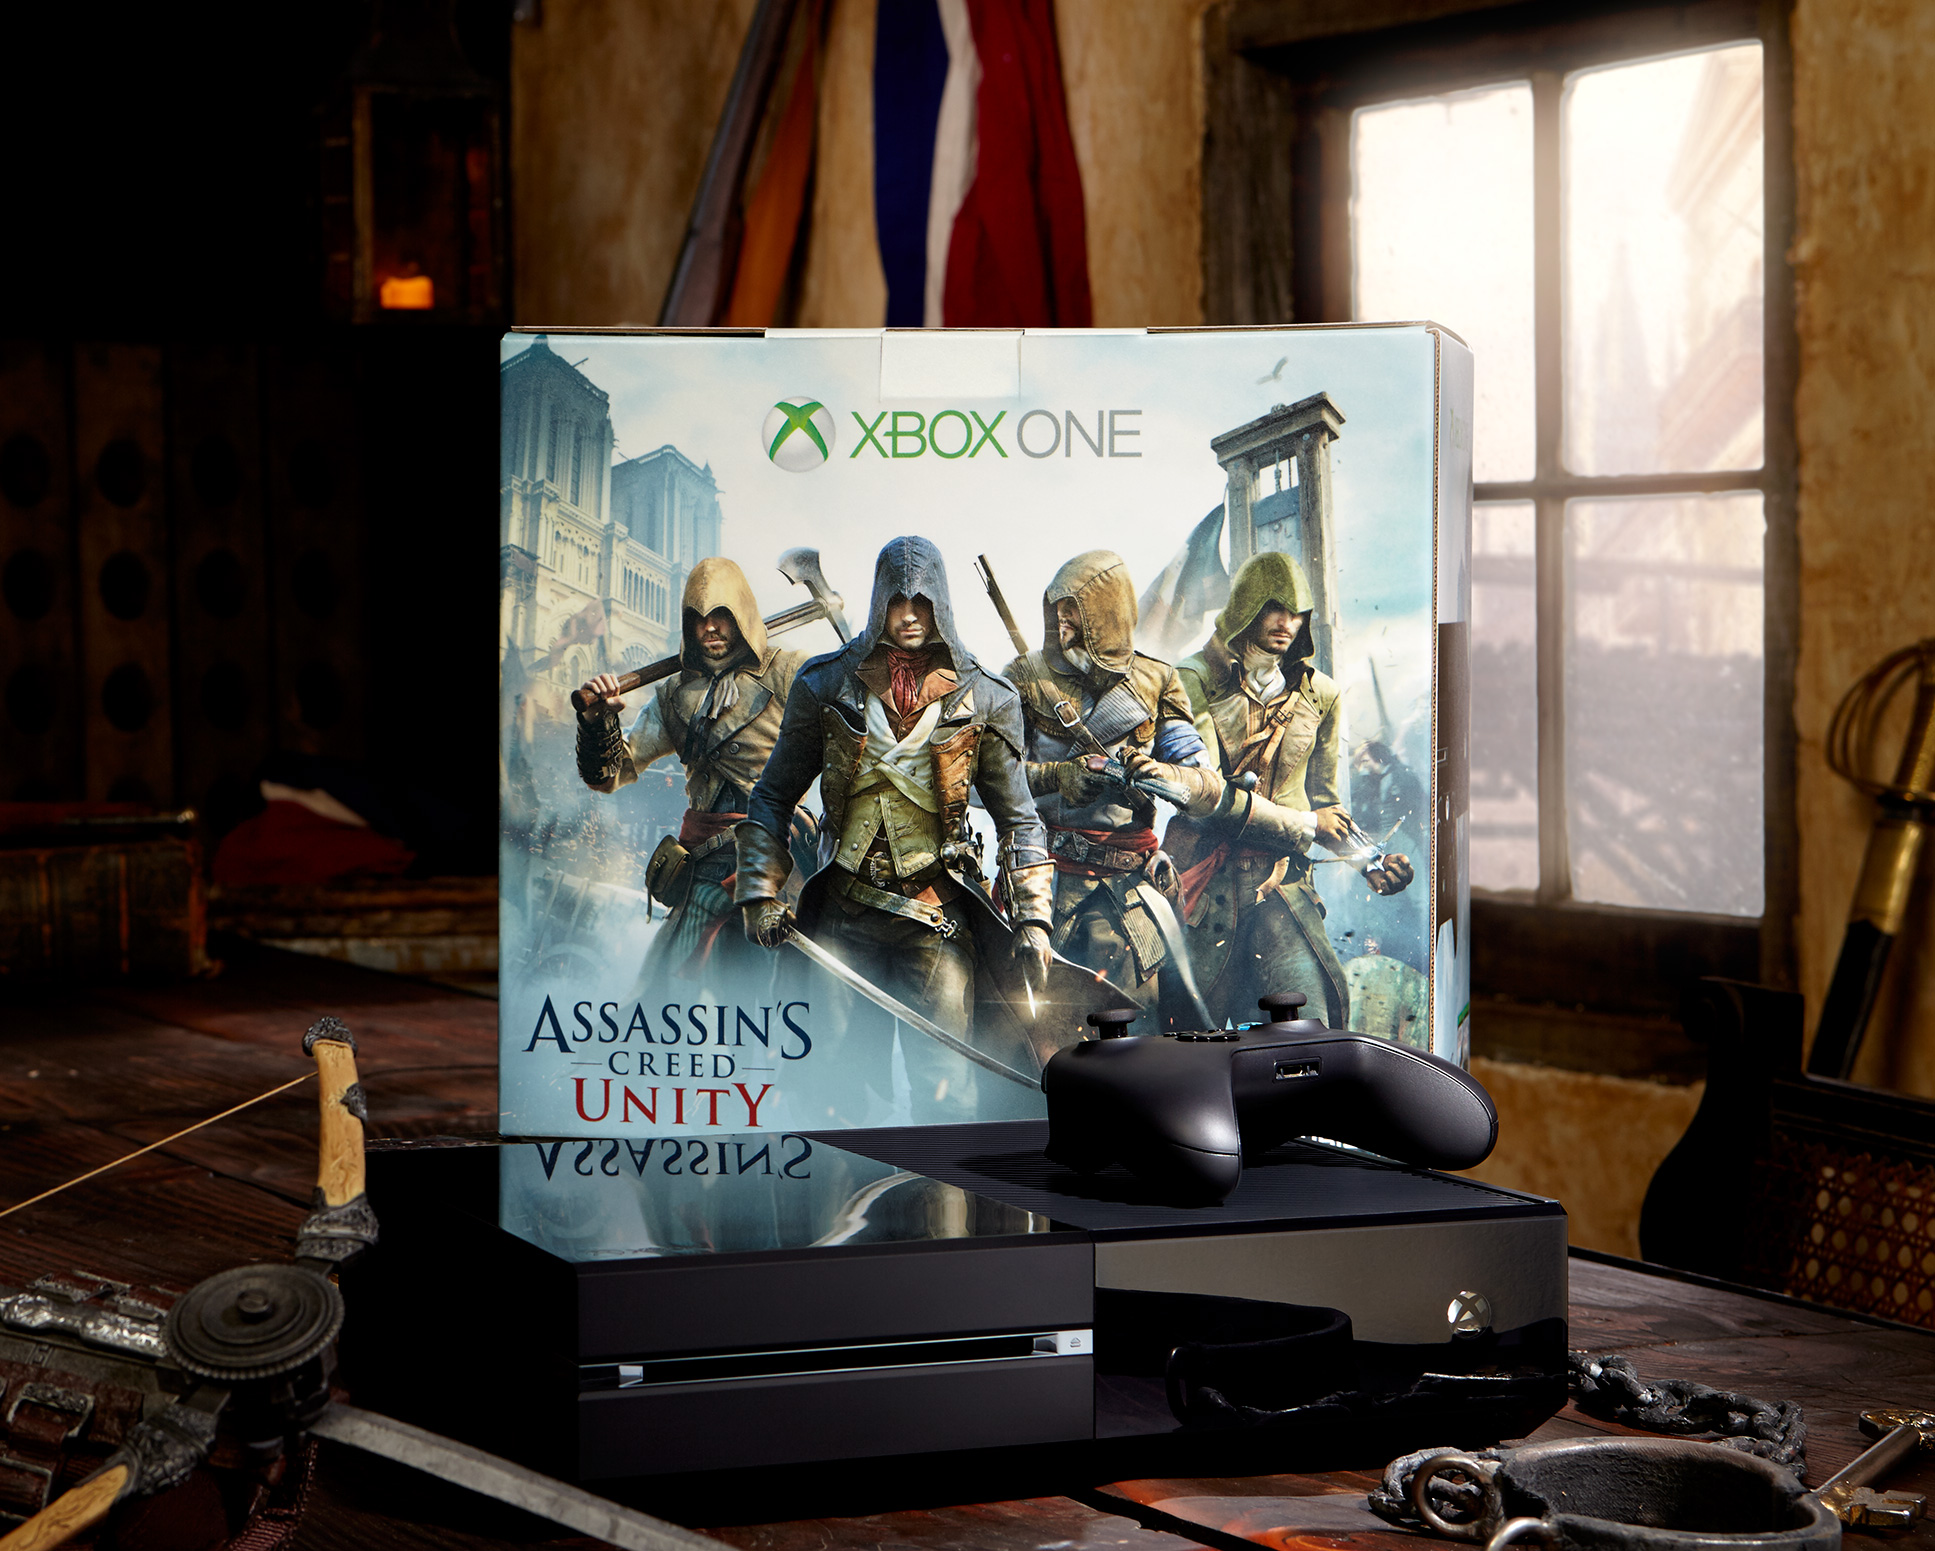 Microsoft sweetens Xbox One bundle deals with a free, big-name AAA game today